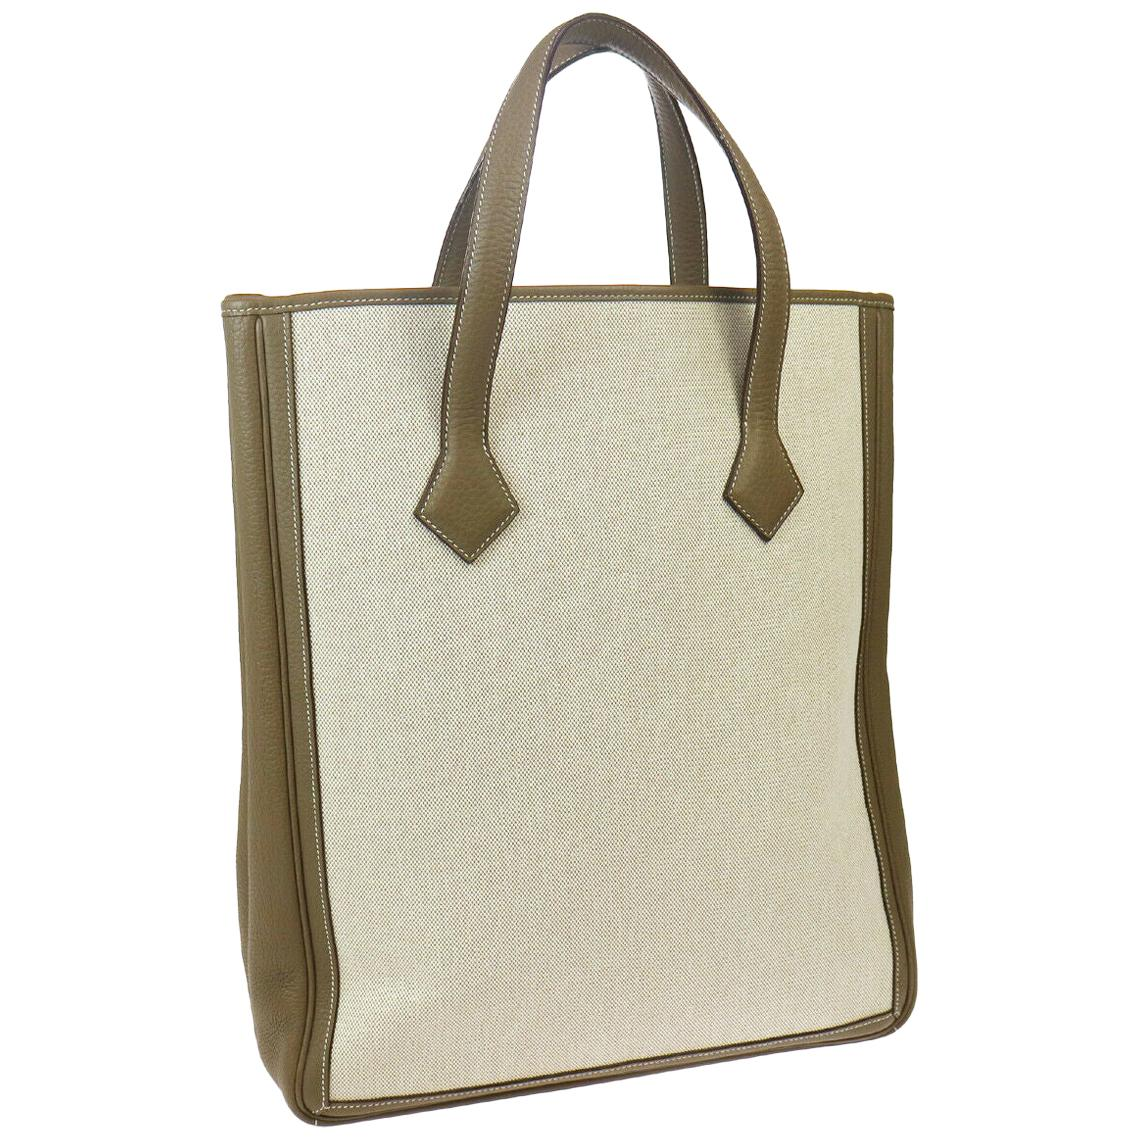 Hermes Tan Canvas Taupe Leather Carryall Travel Men's Women's Tote Bag